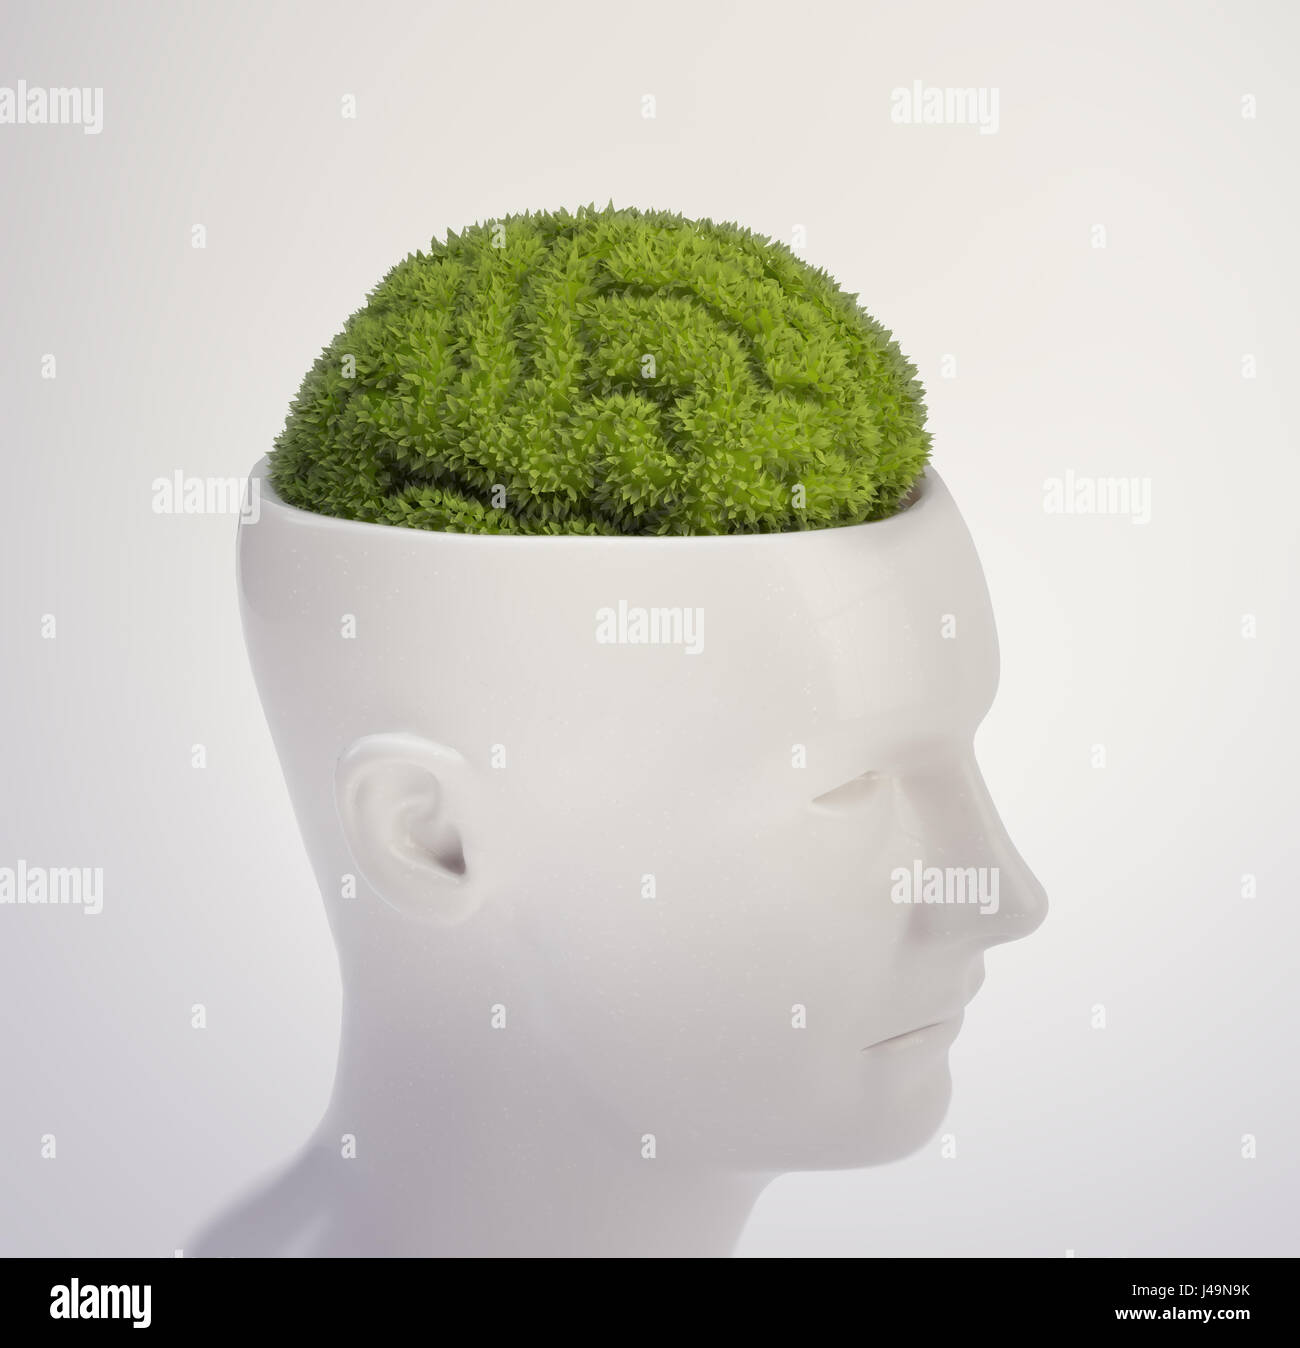 Plant shaped like a human brain - intelligence and memory concept 3D illustration - Stock Image